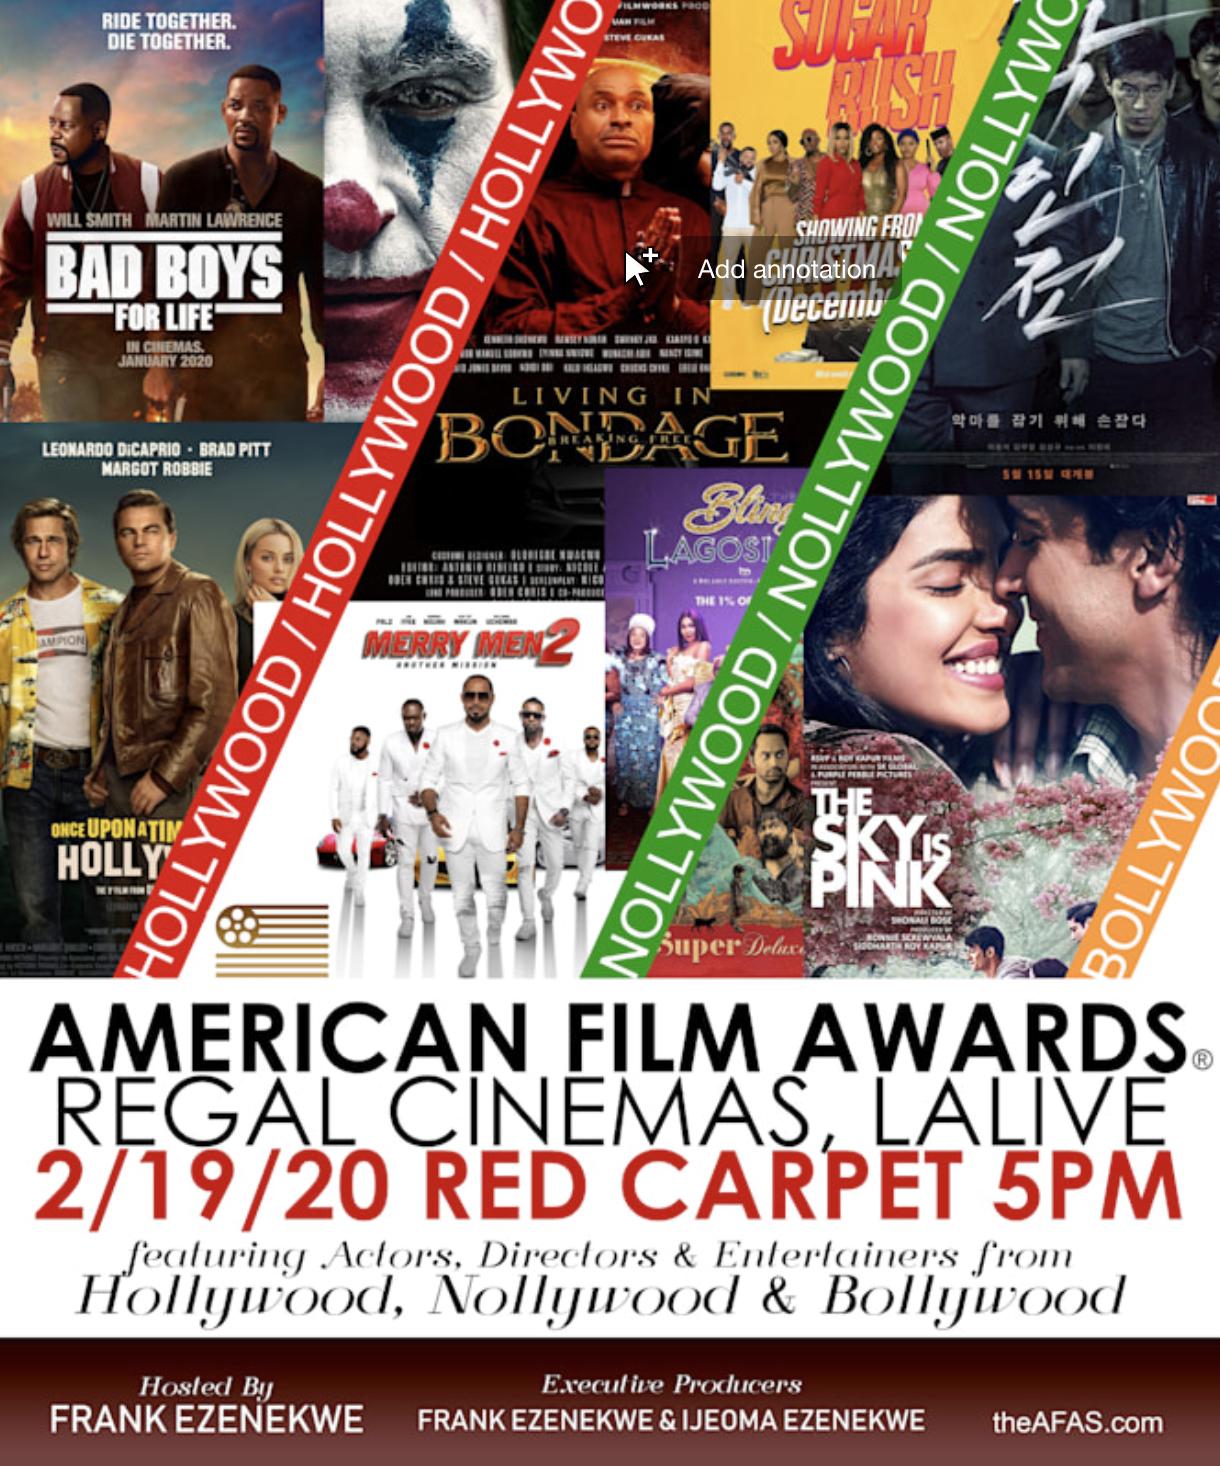 American Film Awards® 2020 Edition to be Held at Regal Cinemas, LA LIVE and the Nominees are Announced a day After the Oscars®